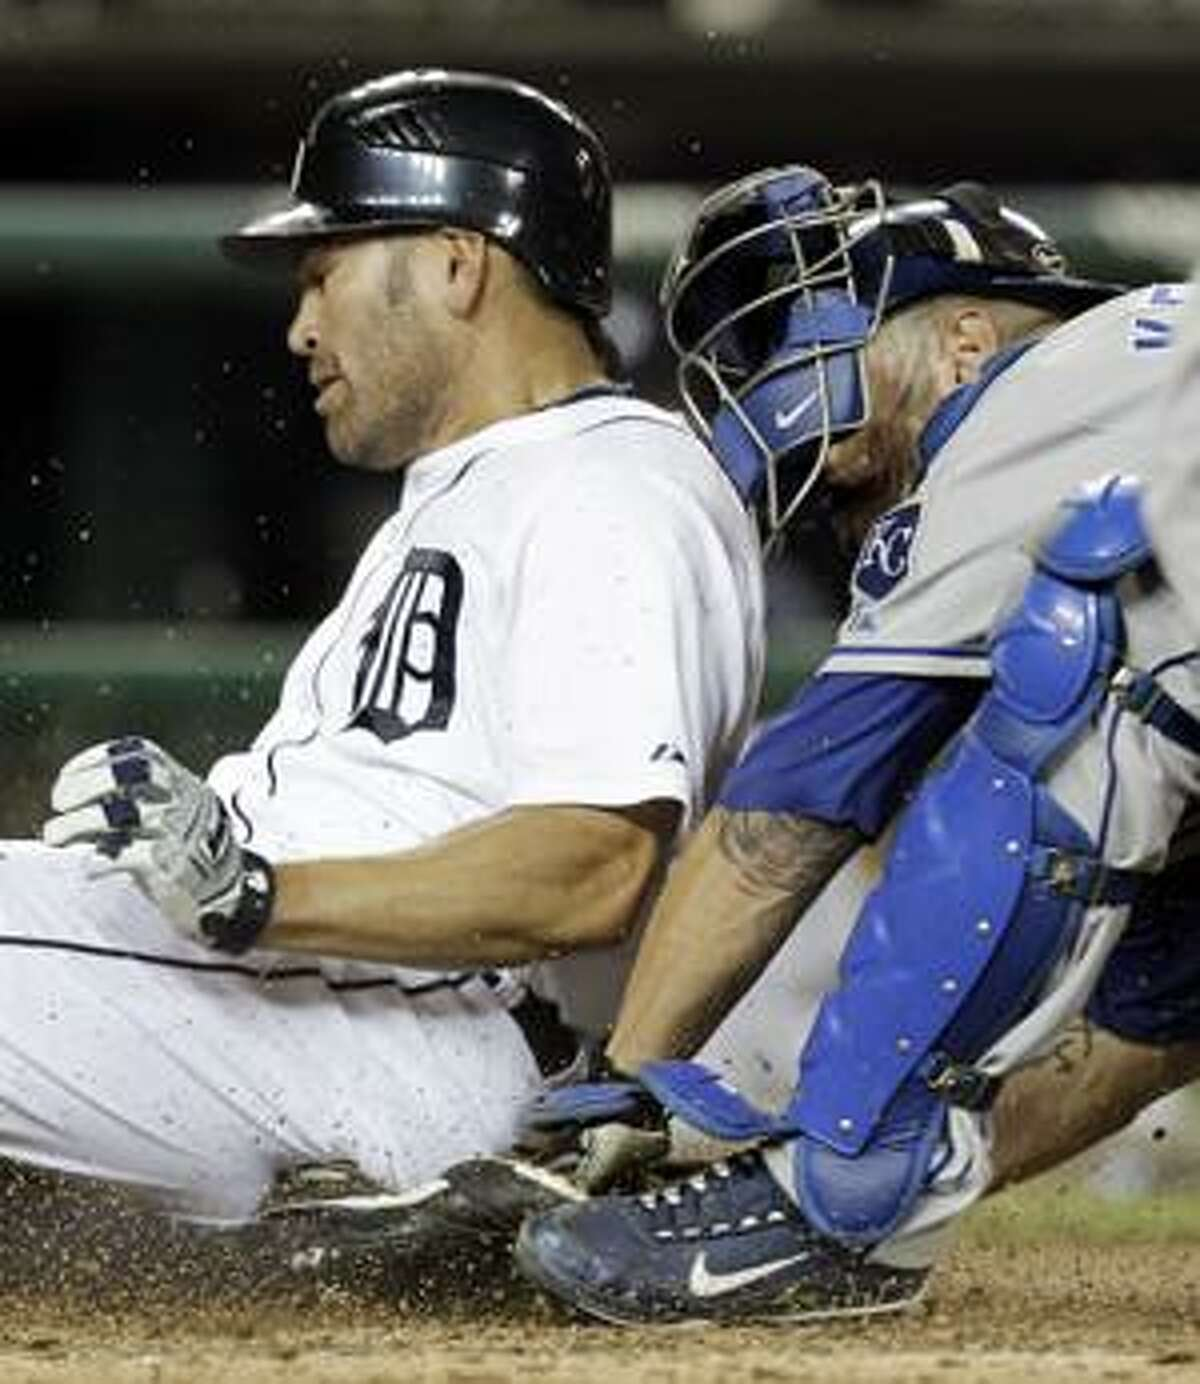 Johnny Damon of the Detroit Tigers, left, slides safely into home plate past the tag of Kansas City Royals catch Jason Kendall in the sixth inning of a baseball game in Detroit, Monday, Aug. 23, 2010. (AP Photo/Paul Sancya)